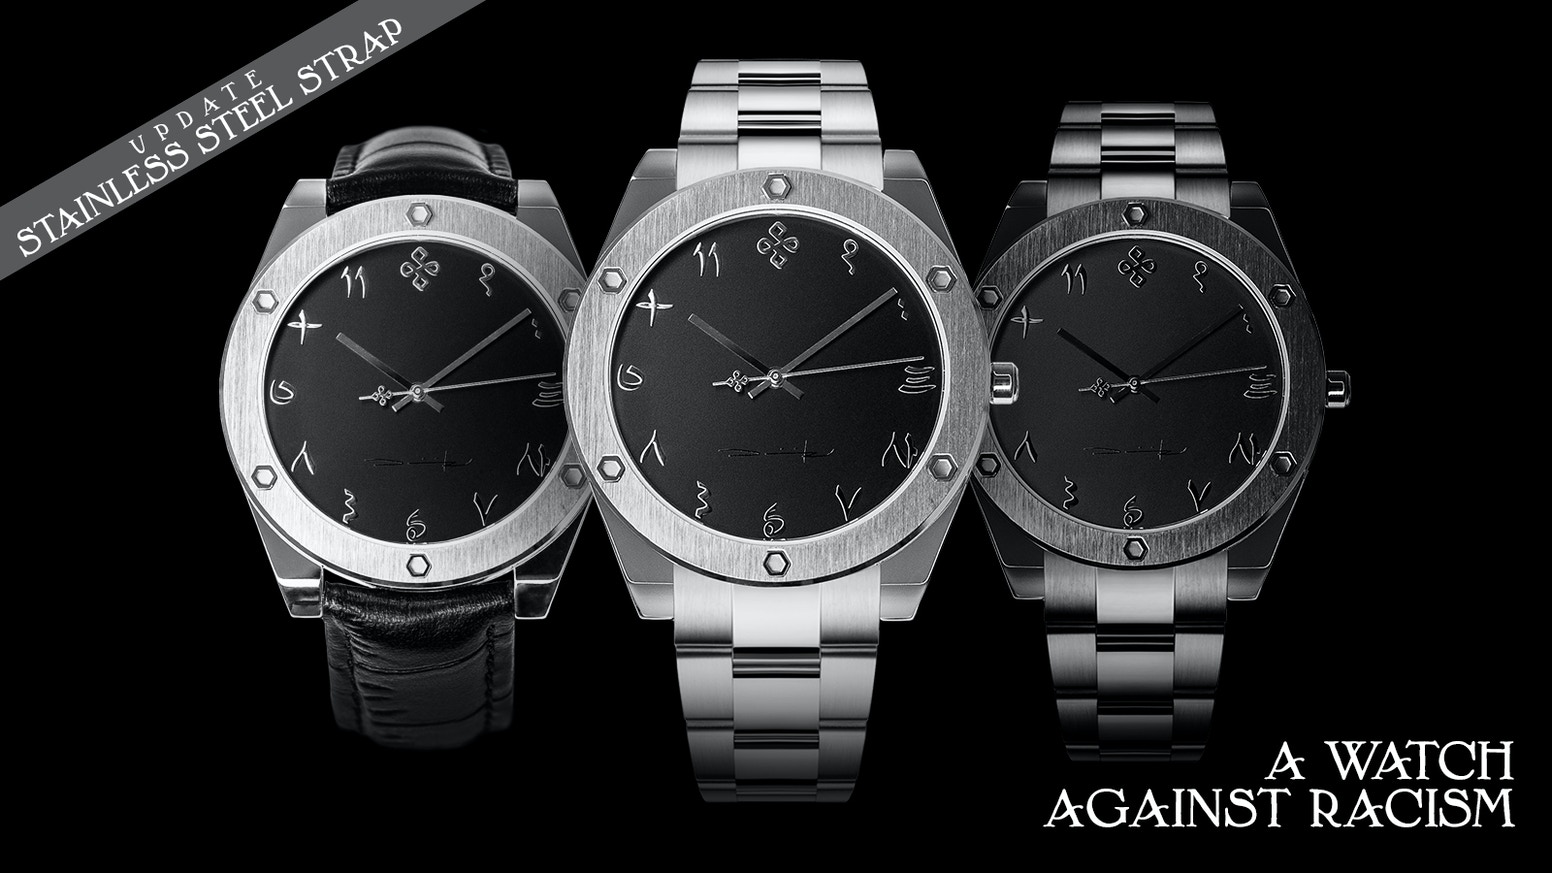 Each number on the watch represents a different ethnic group. - Finest quality & highest industry standers.